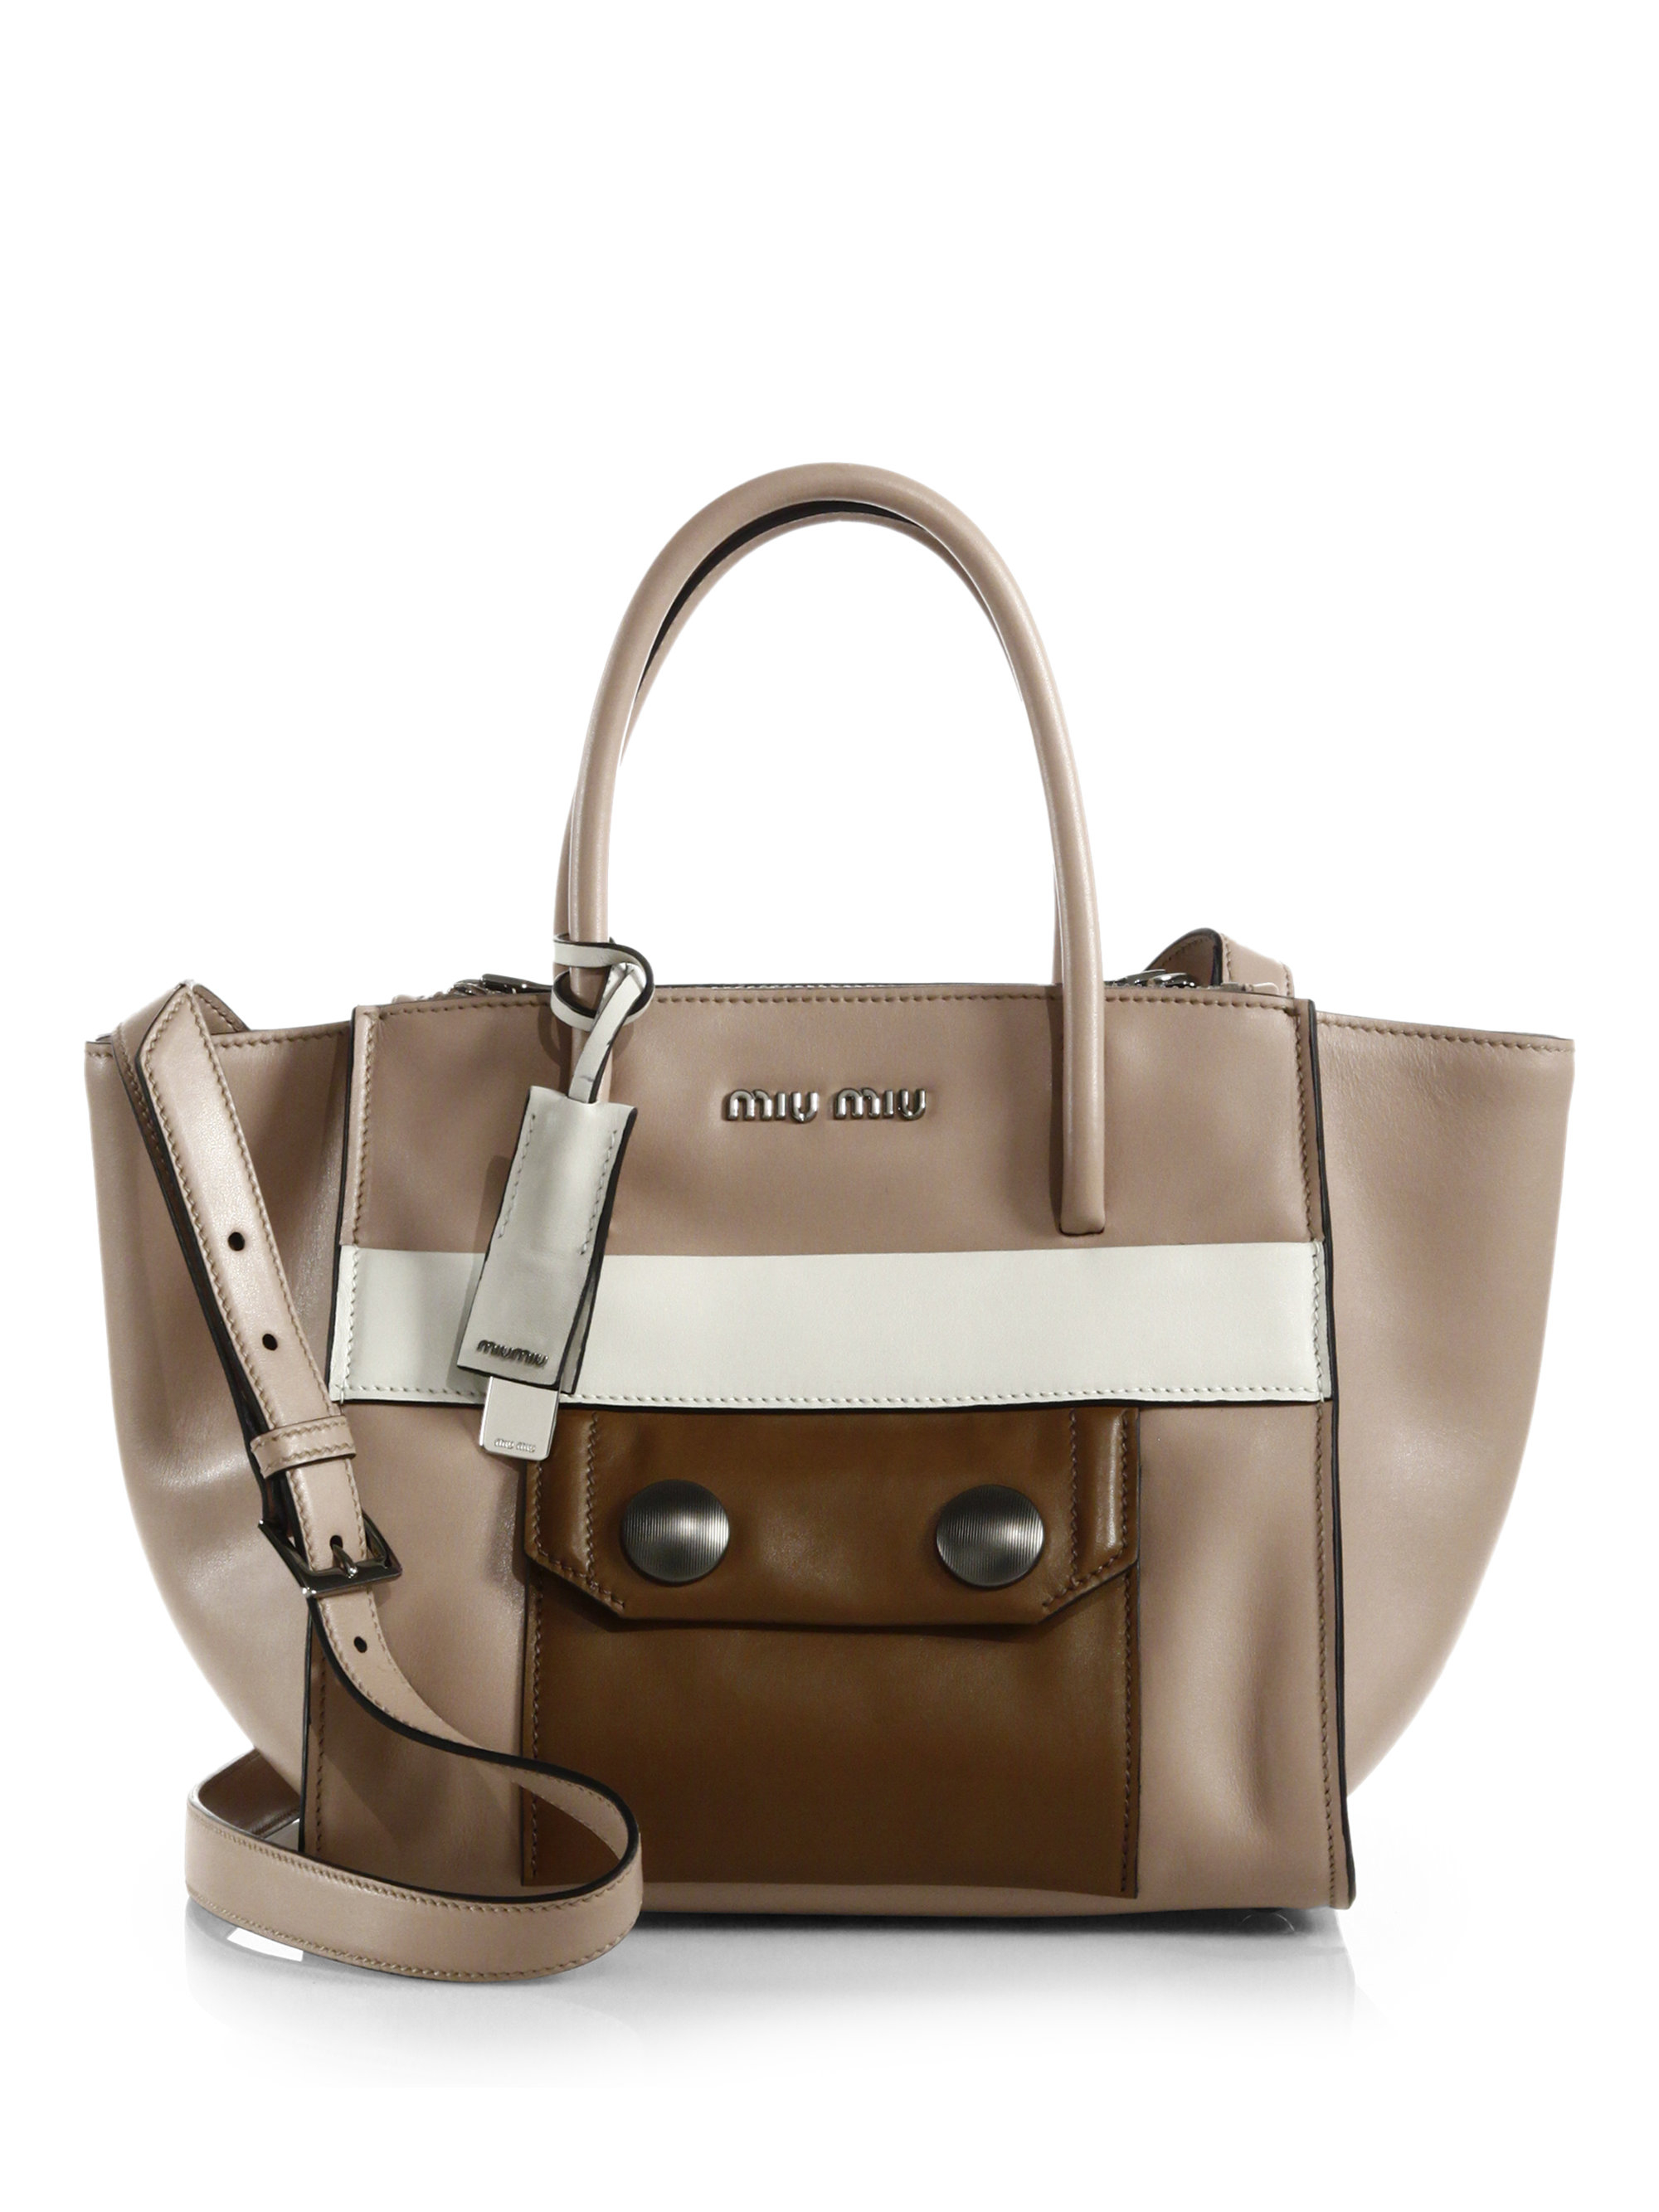 Miu miu Colorblock Twin-Pocket Tote in Brown (CAMMEO) | Lyst